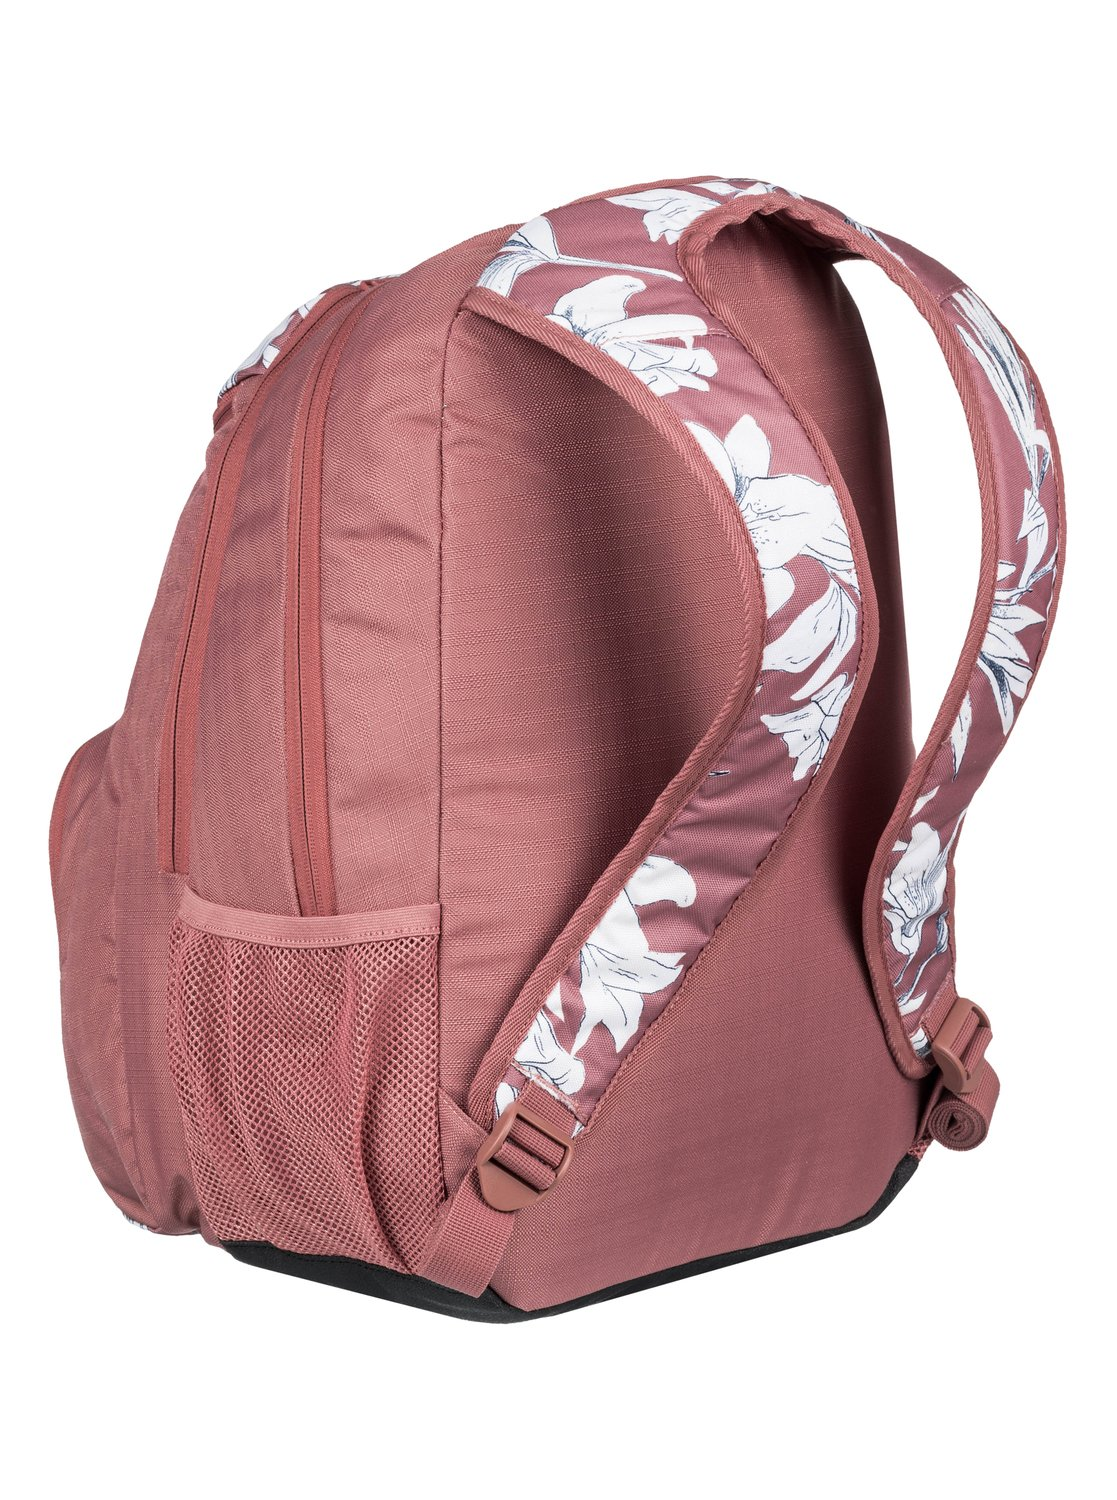 Roxy-Shadow-Swell-24L-Sac-a-dos-taille-moyenne-pour-Femme-ERJBP03737